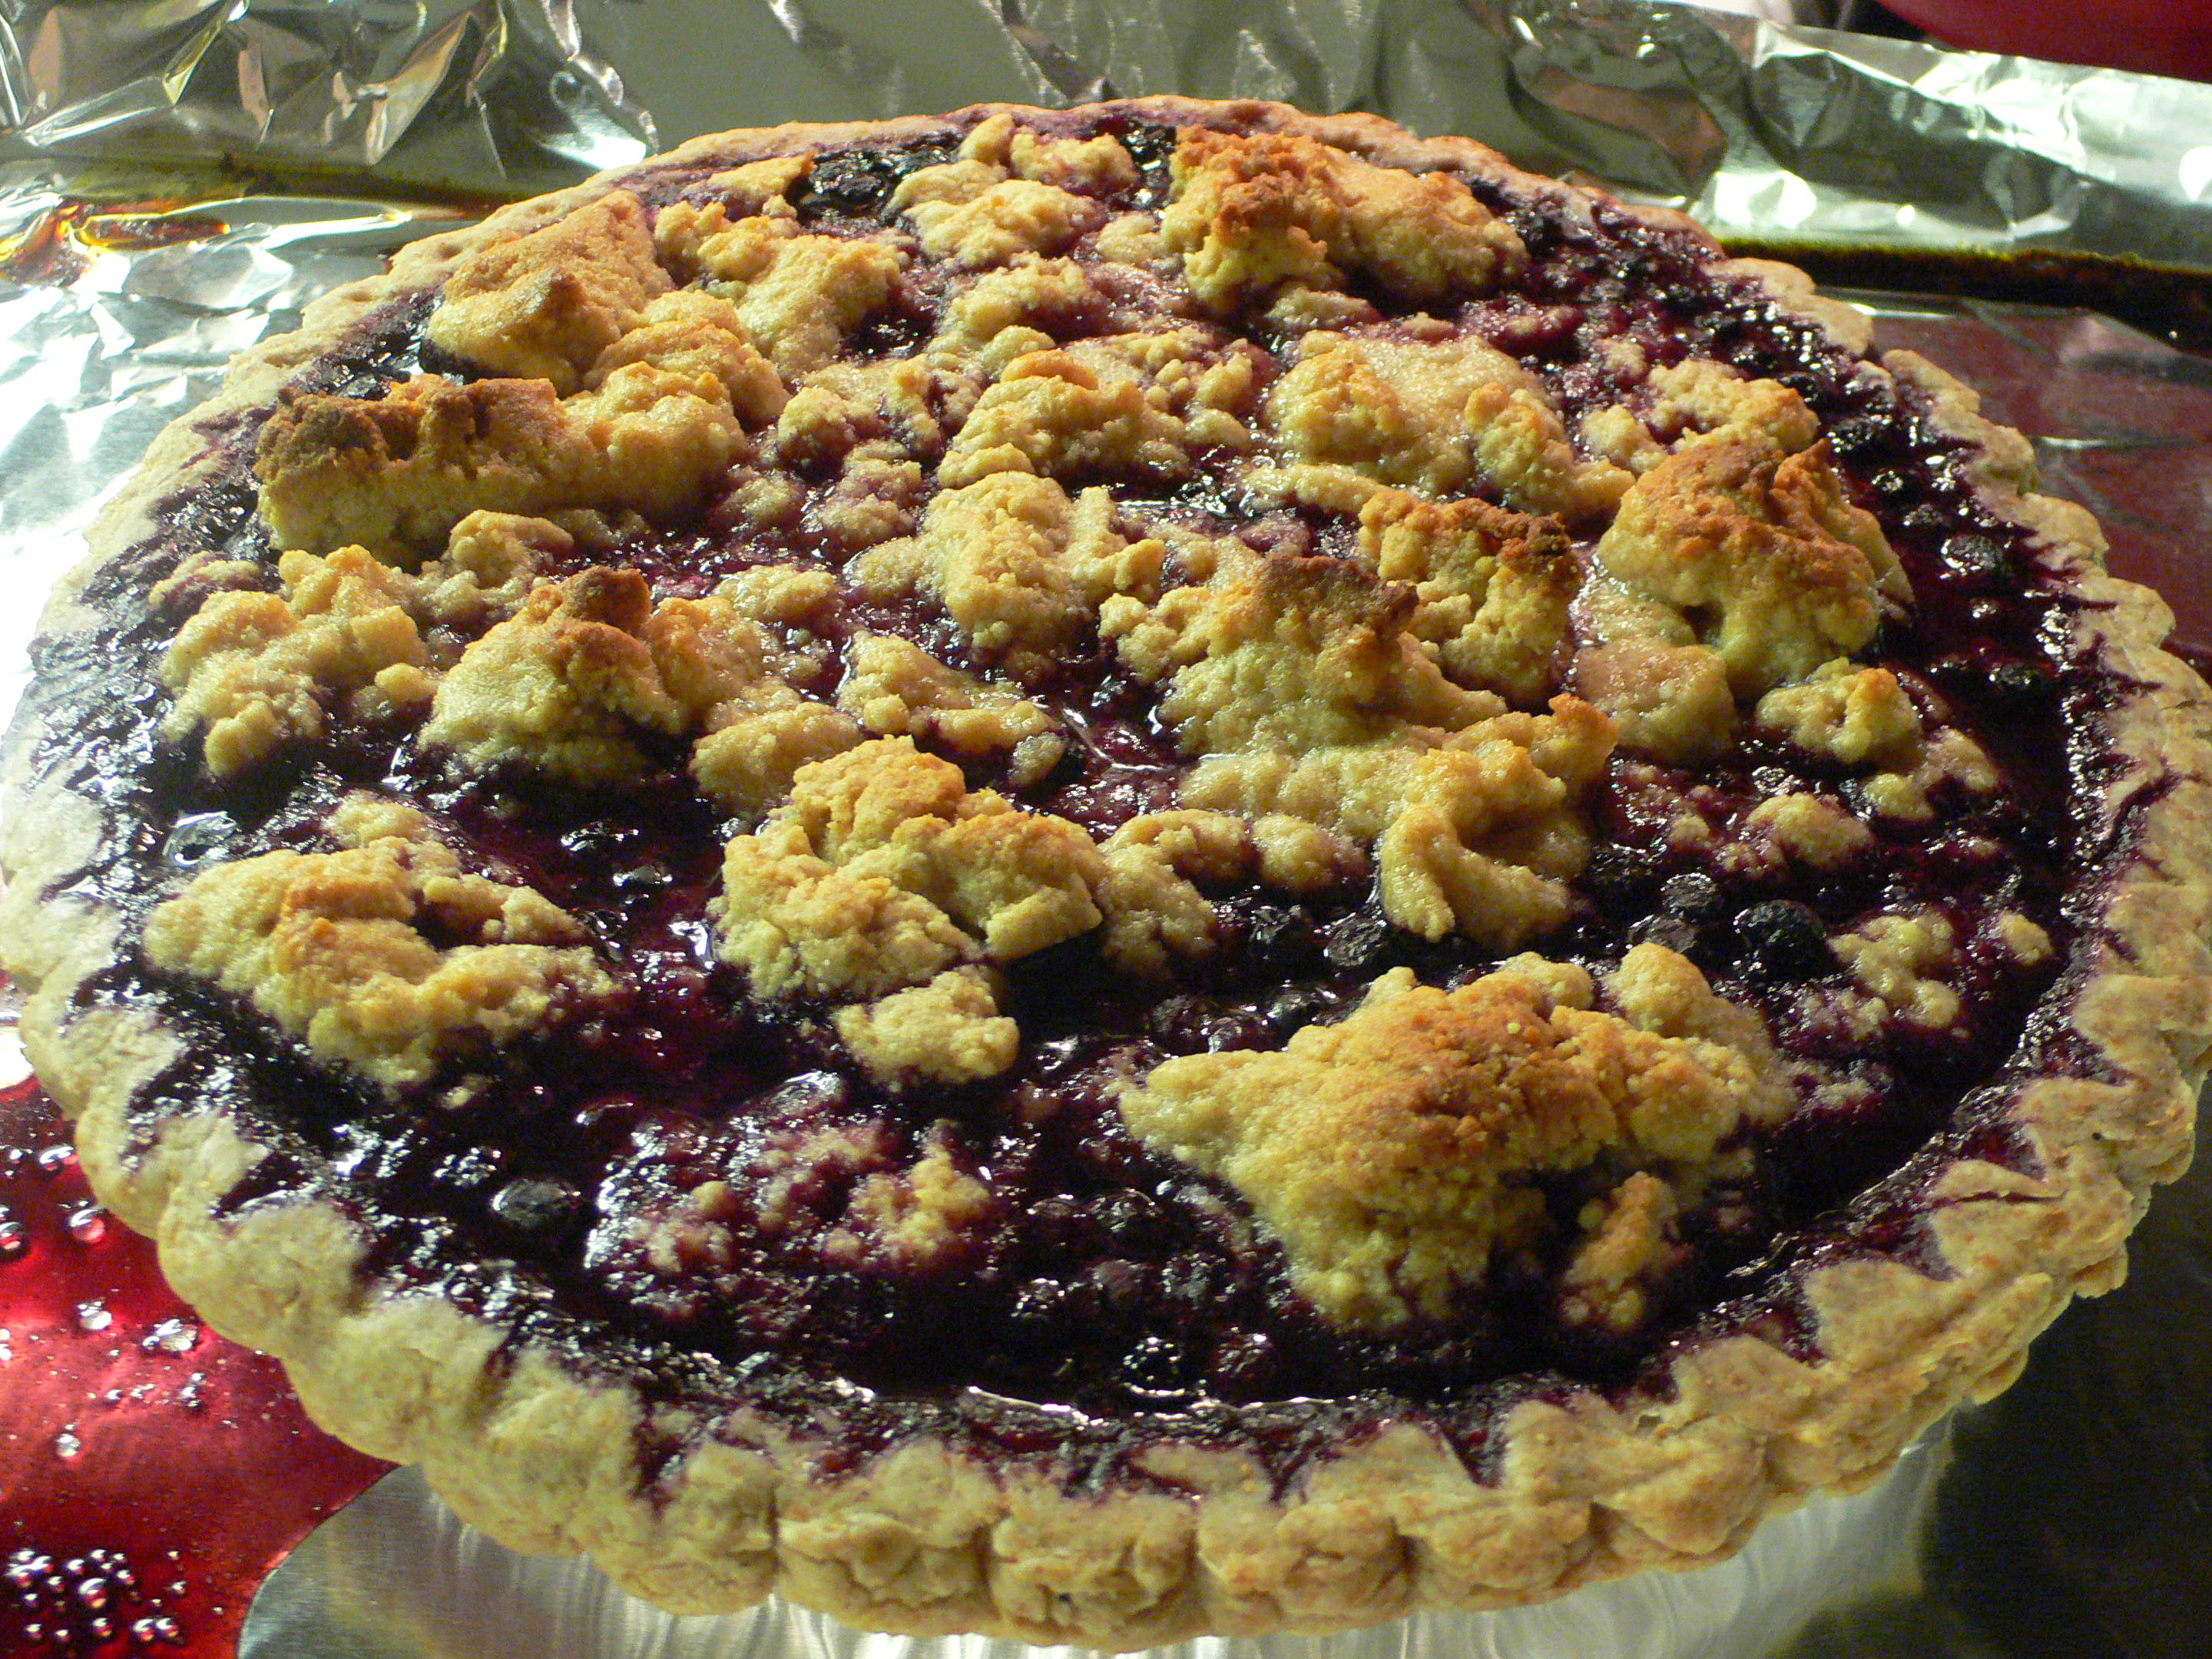 File:Blueberry Pie with Almond Crumb Topping, May 2009.jpg - Wikimedia ...